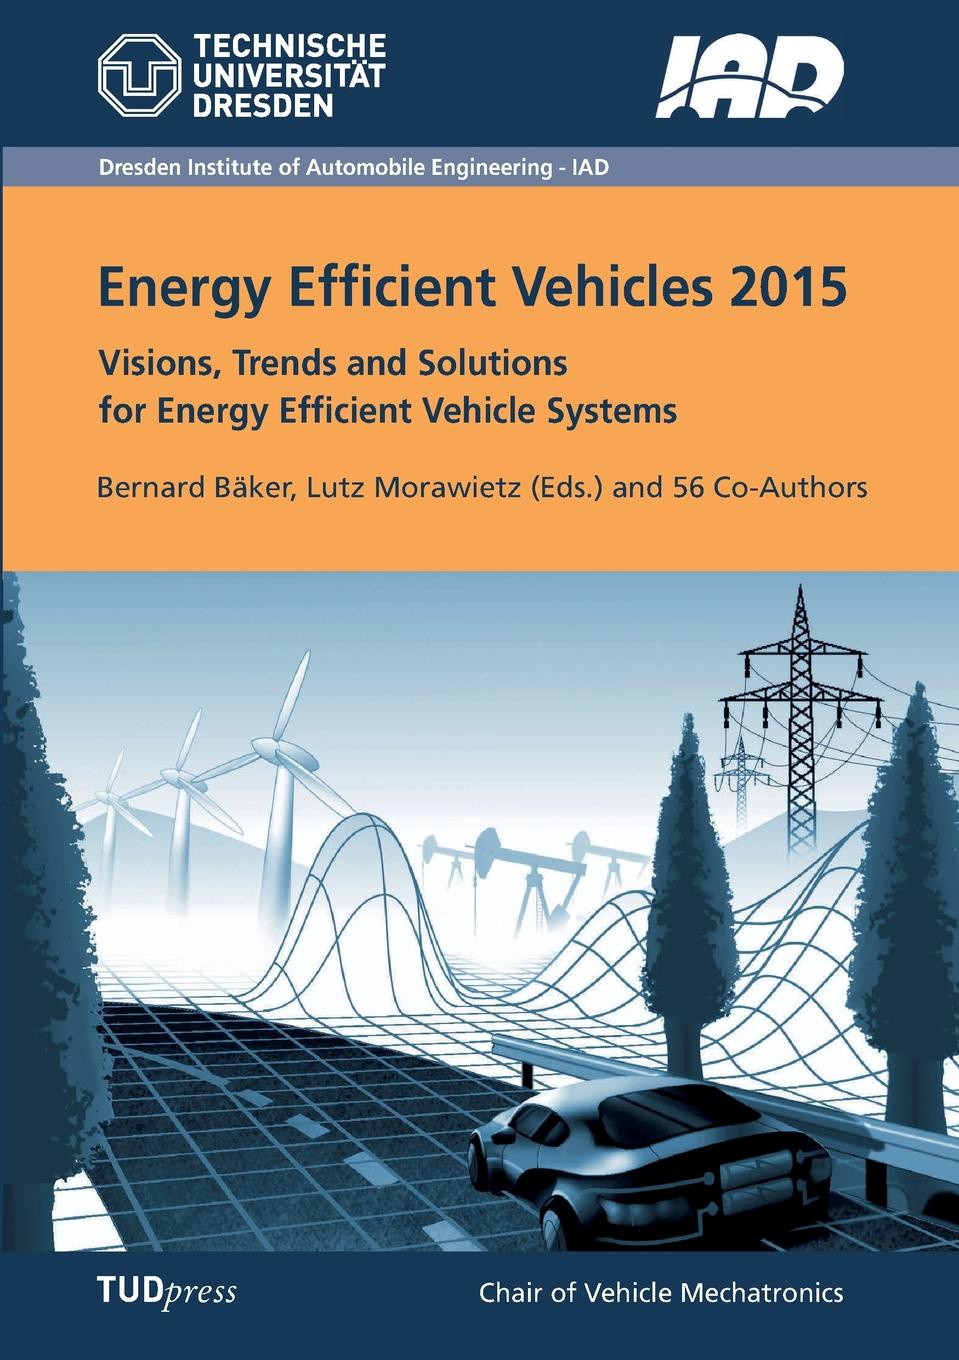 Energy Efficient Vehicles 2015